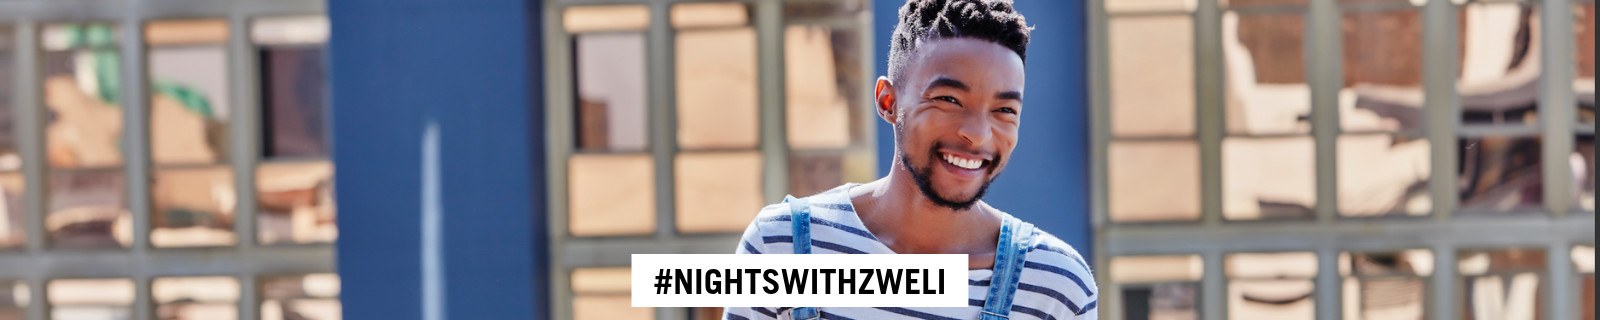 nights-with-zweli-banner-2019png